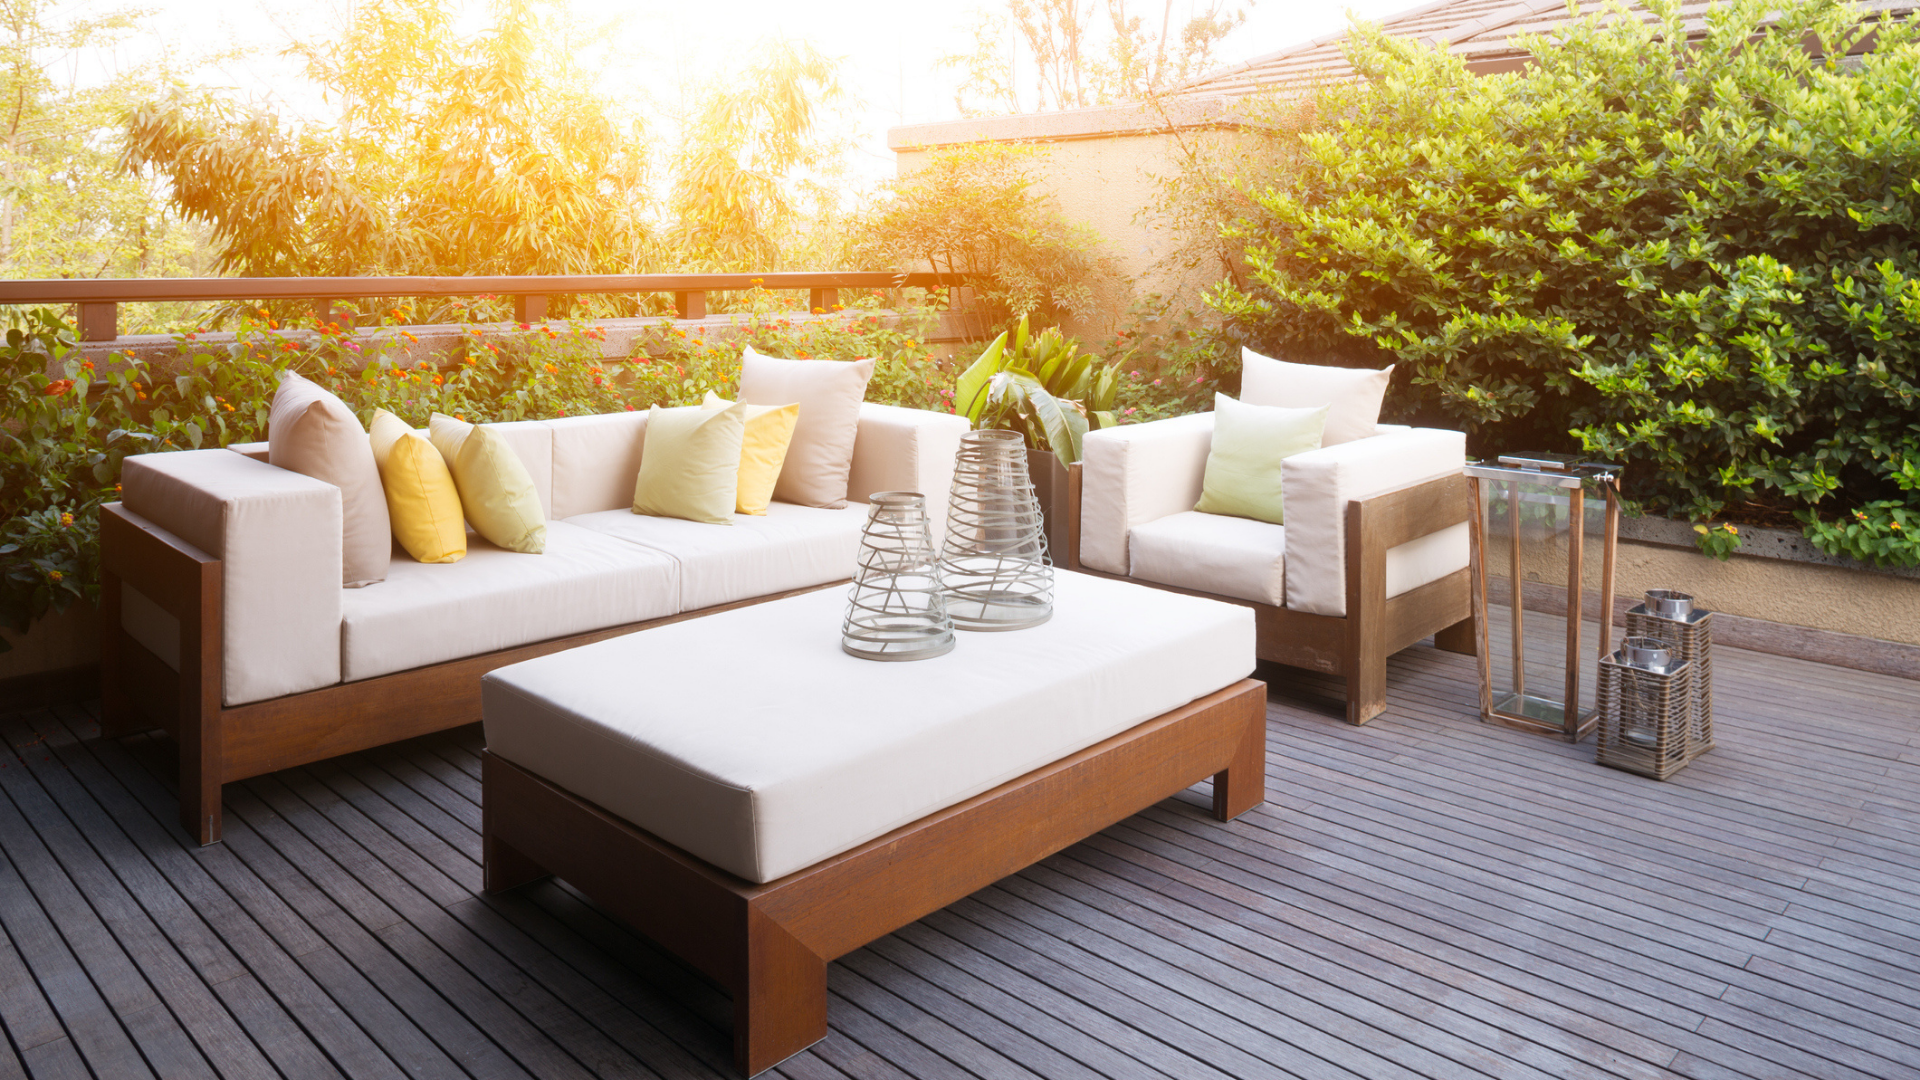 21 Wayfair patio furniture Save on top rated patio sets at this event